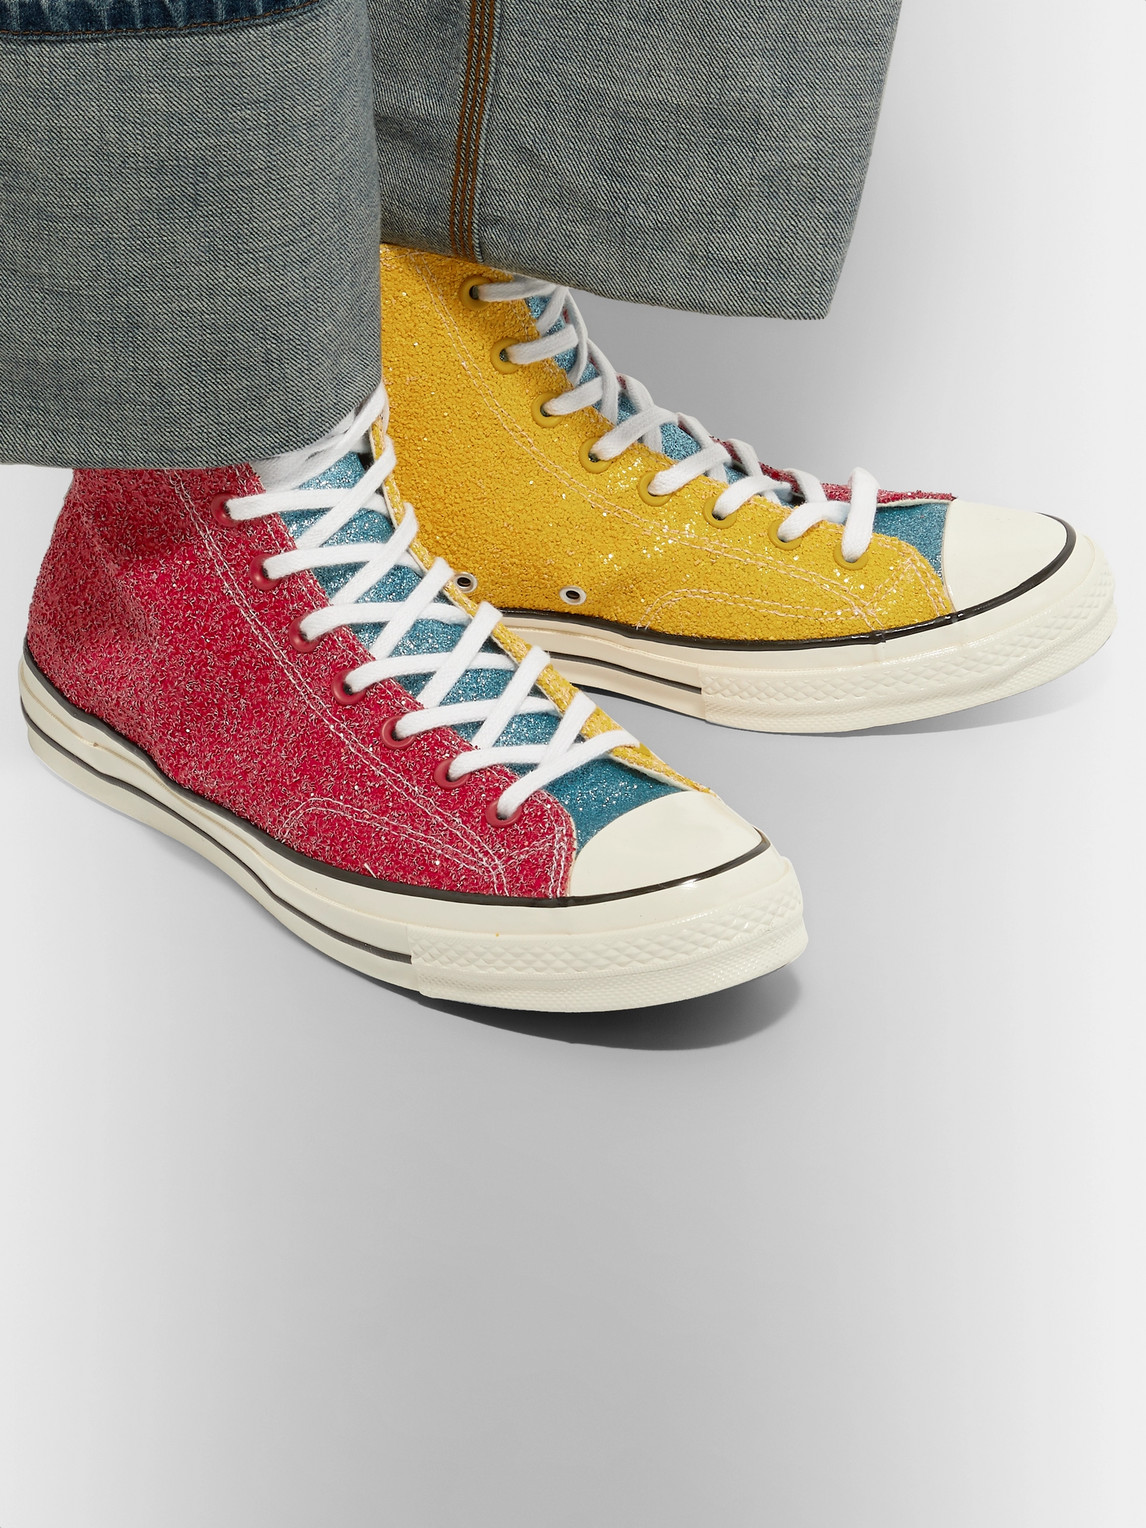 Converse Sneakers JW ANDERSON 1970S CHUCK TAYLOR ALL STAR GLITTERED CANVAS HIGH-TOP SNEAKERS